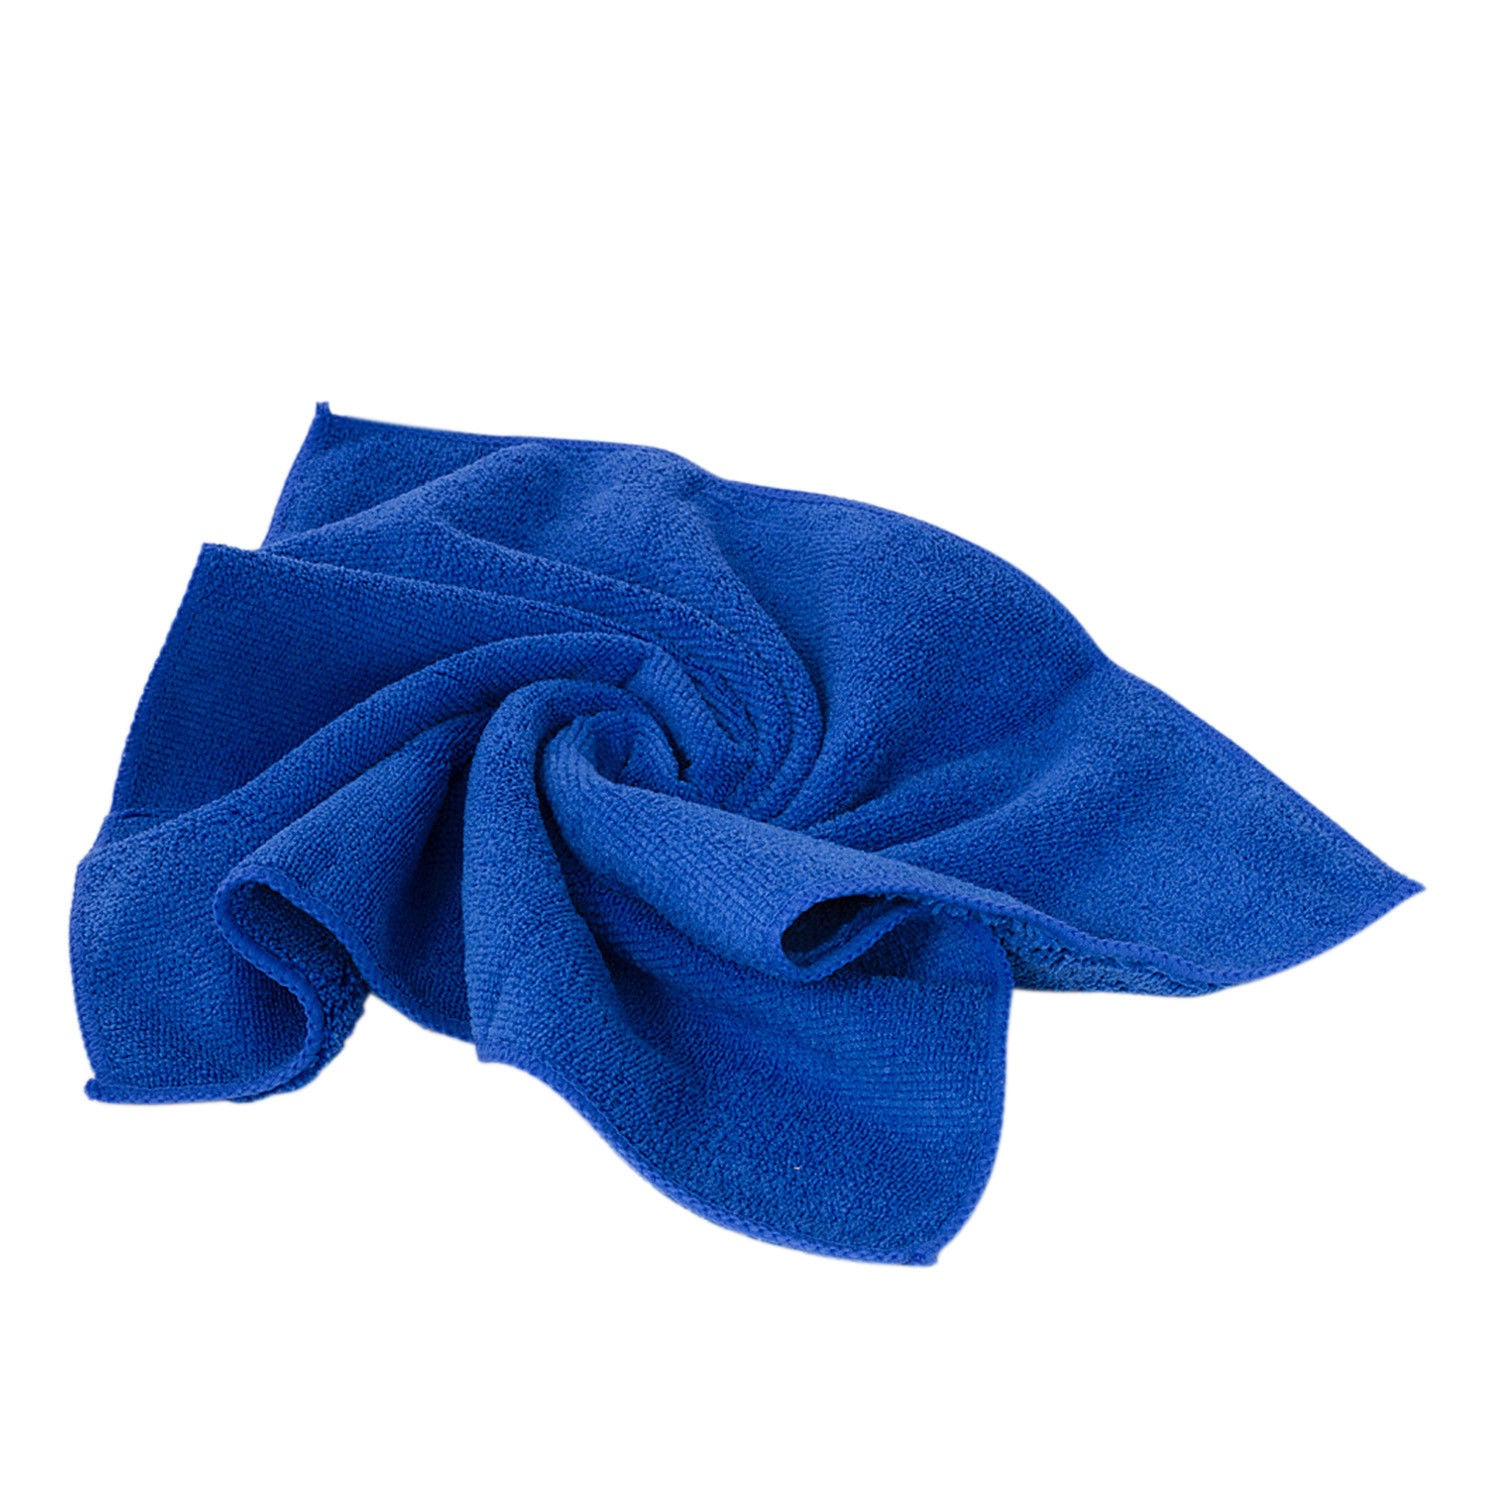 24 Pack Large Blue Microfiber Cleaning Cloth No-Scratch Rag Car Polishing Detail